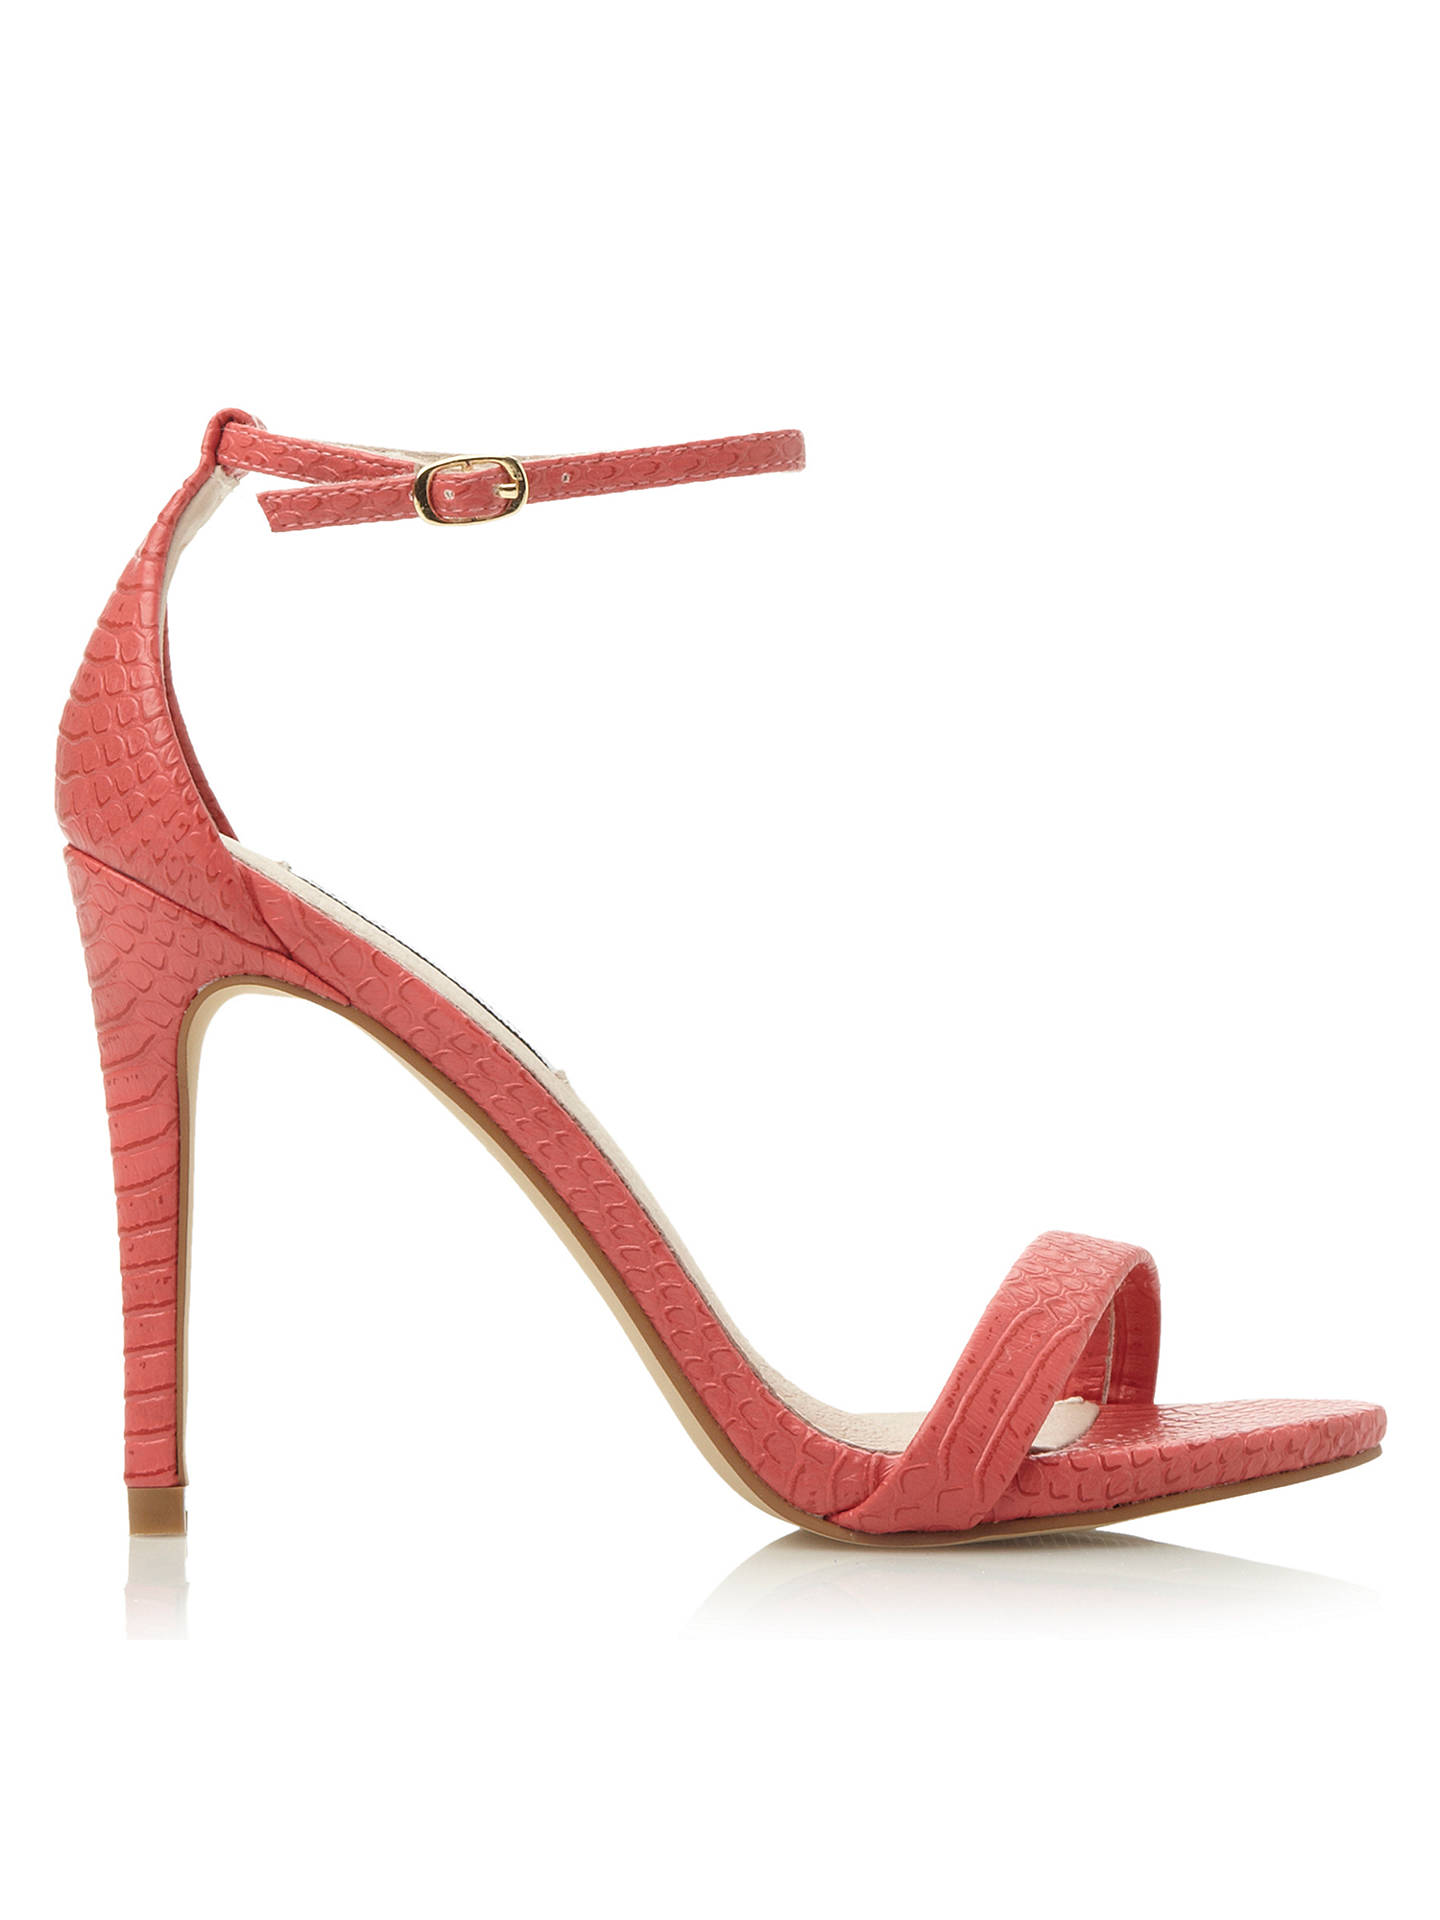 085a6864439 Steve Madden Stecy-R SM Barely There High Heeled Sandals at John ...